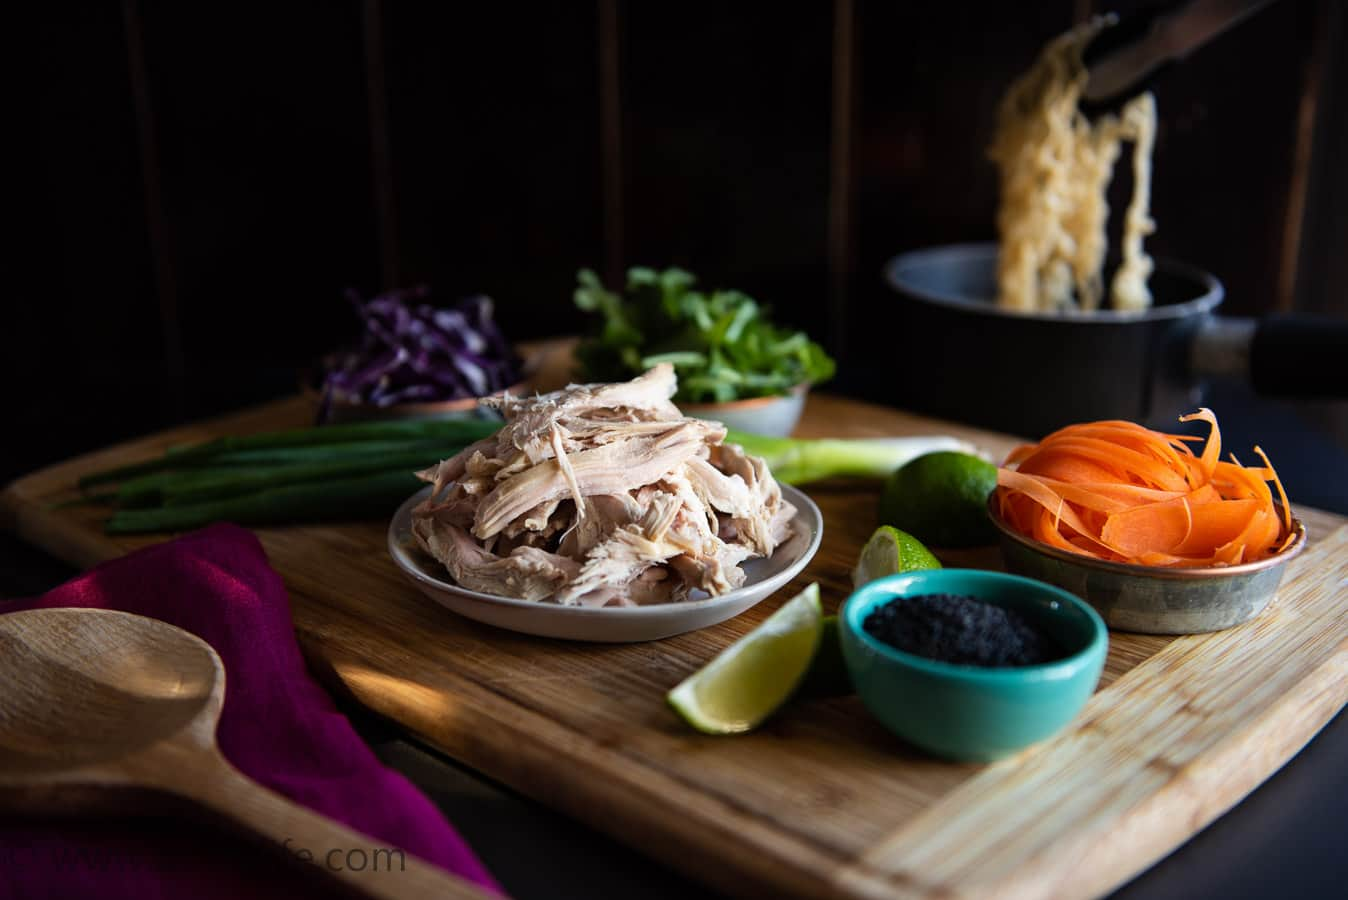 Wooden cutting board with ingredients for leftover turkey ramen soup